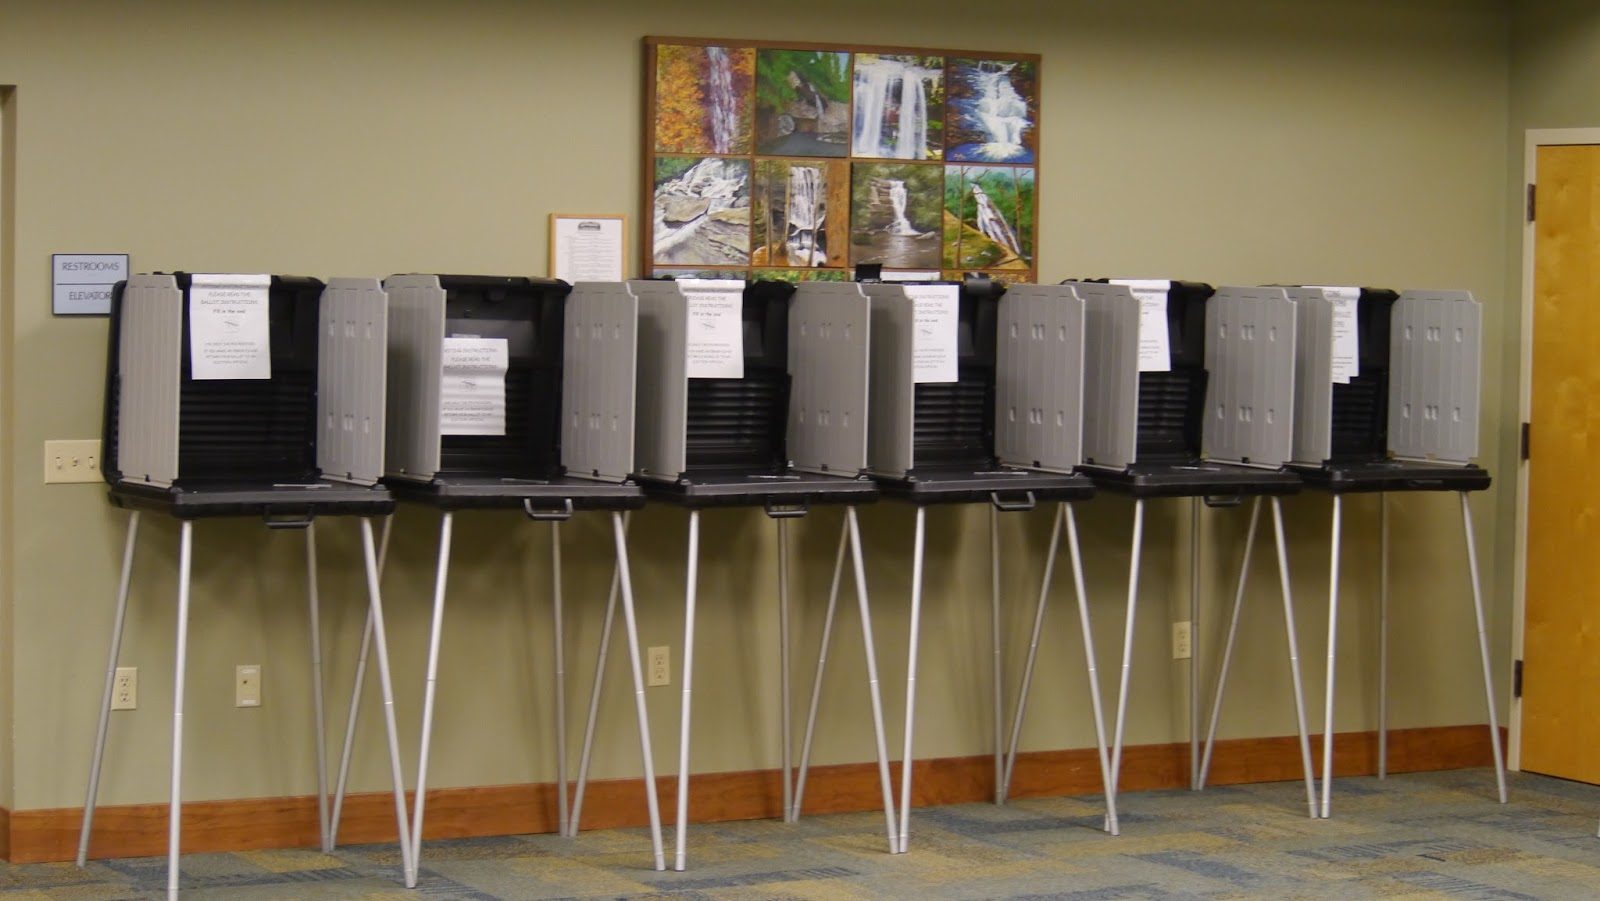 North Franklin Precinct Voting Booths